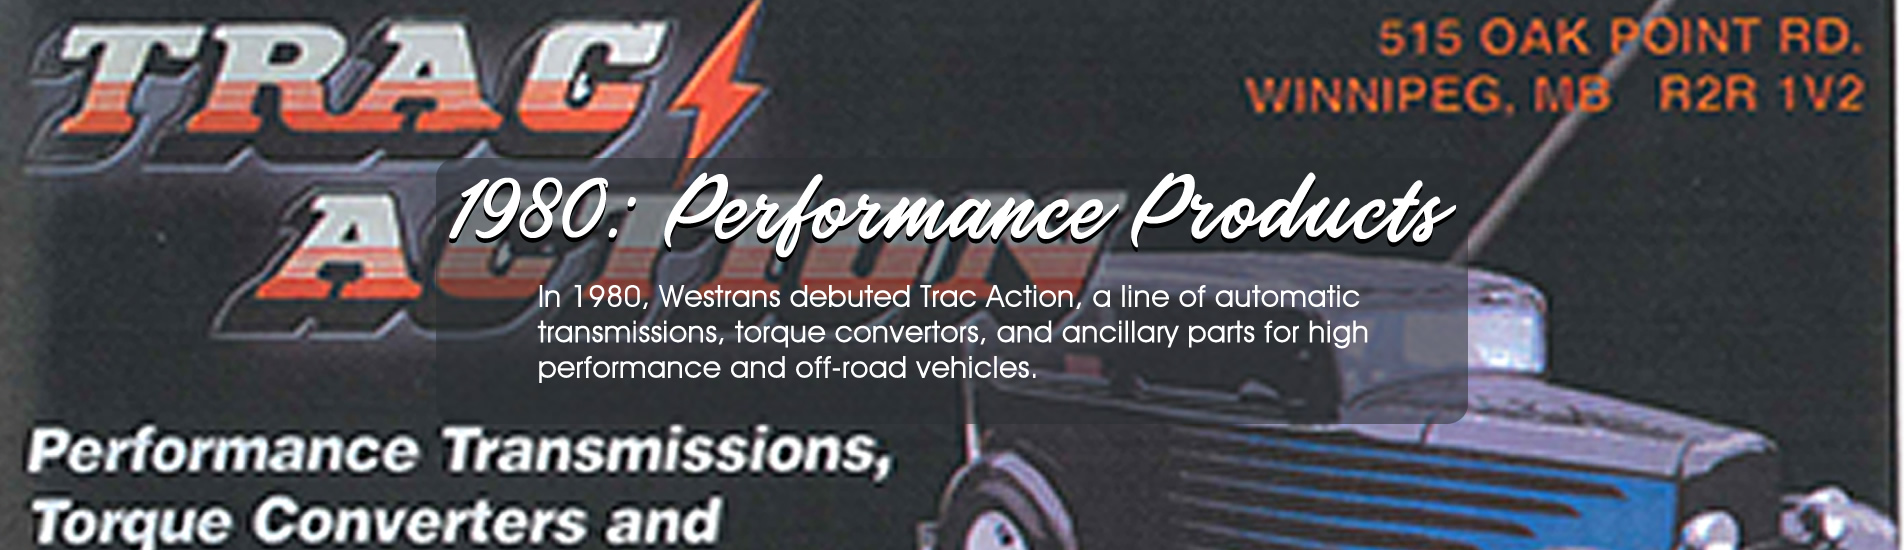 westrans-Trac-Action-1980